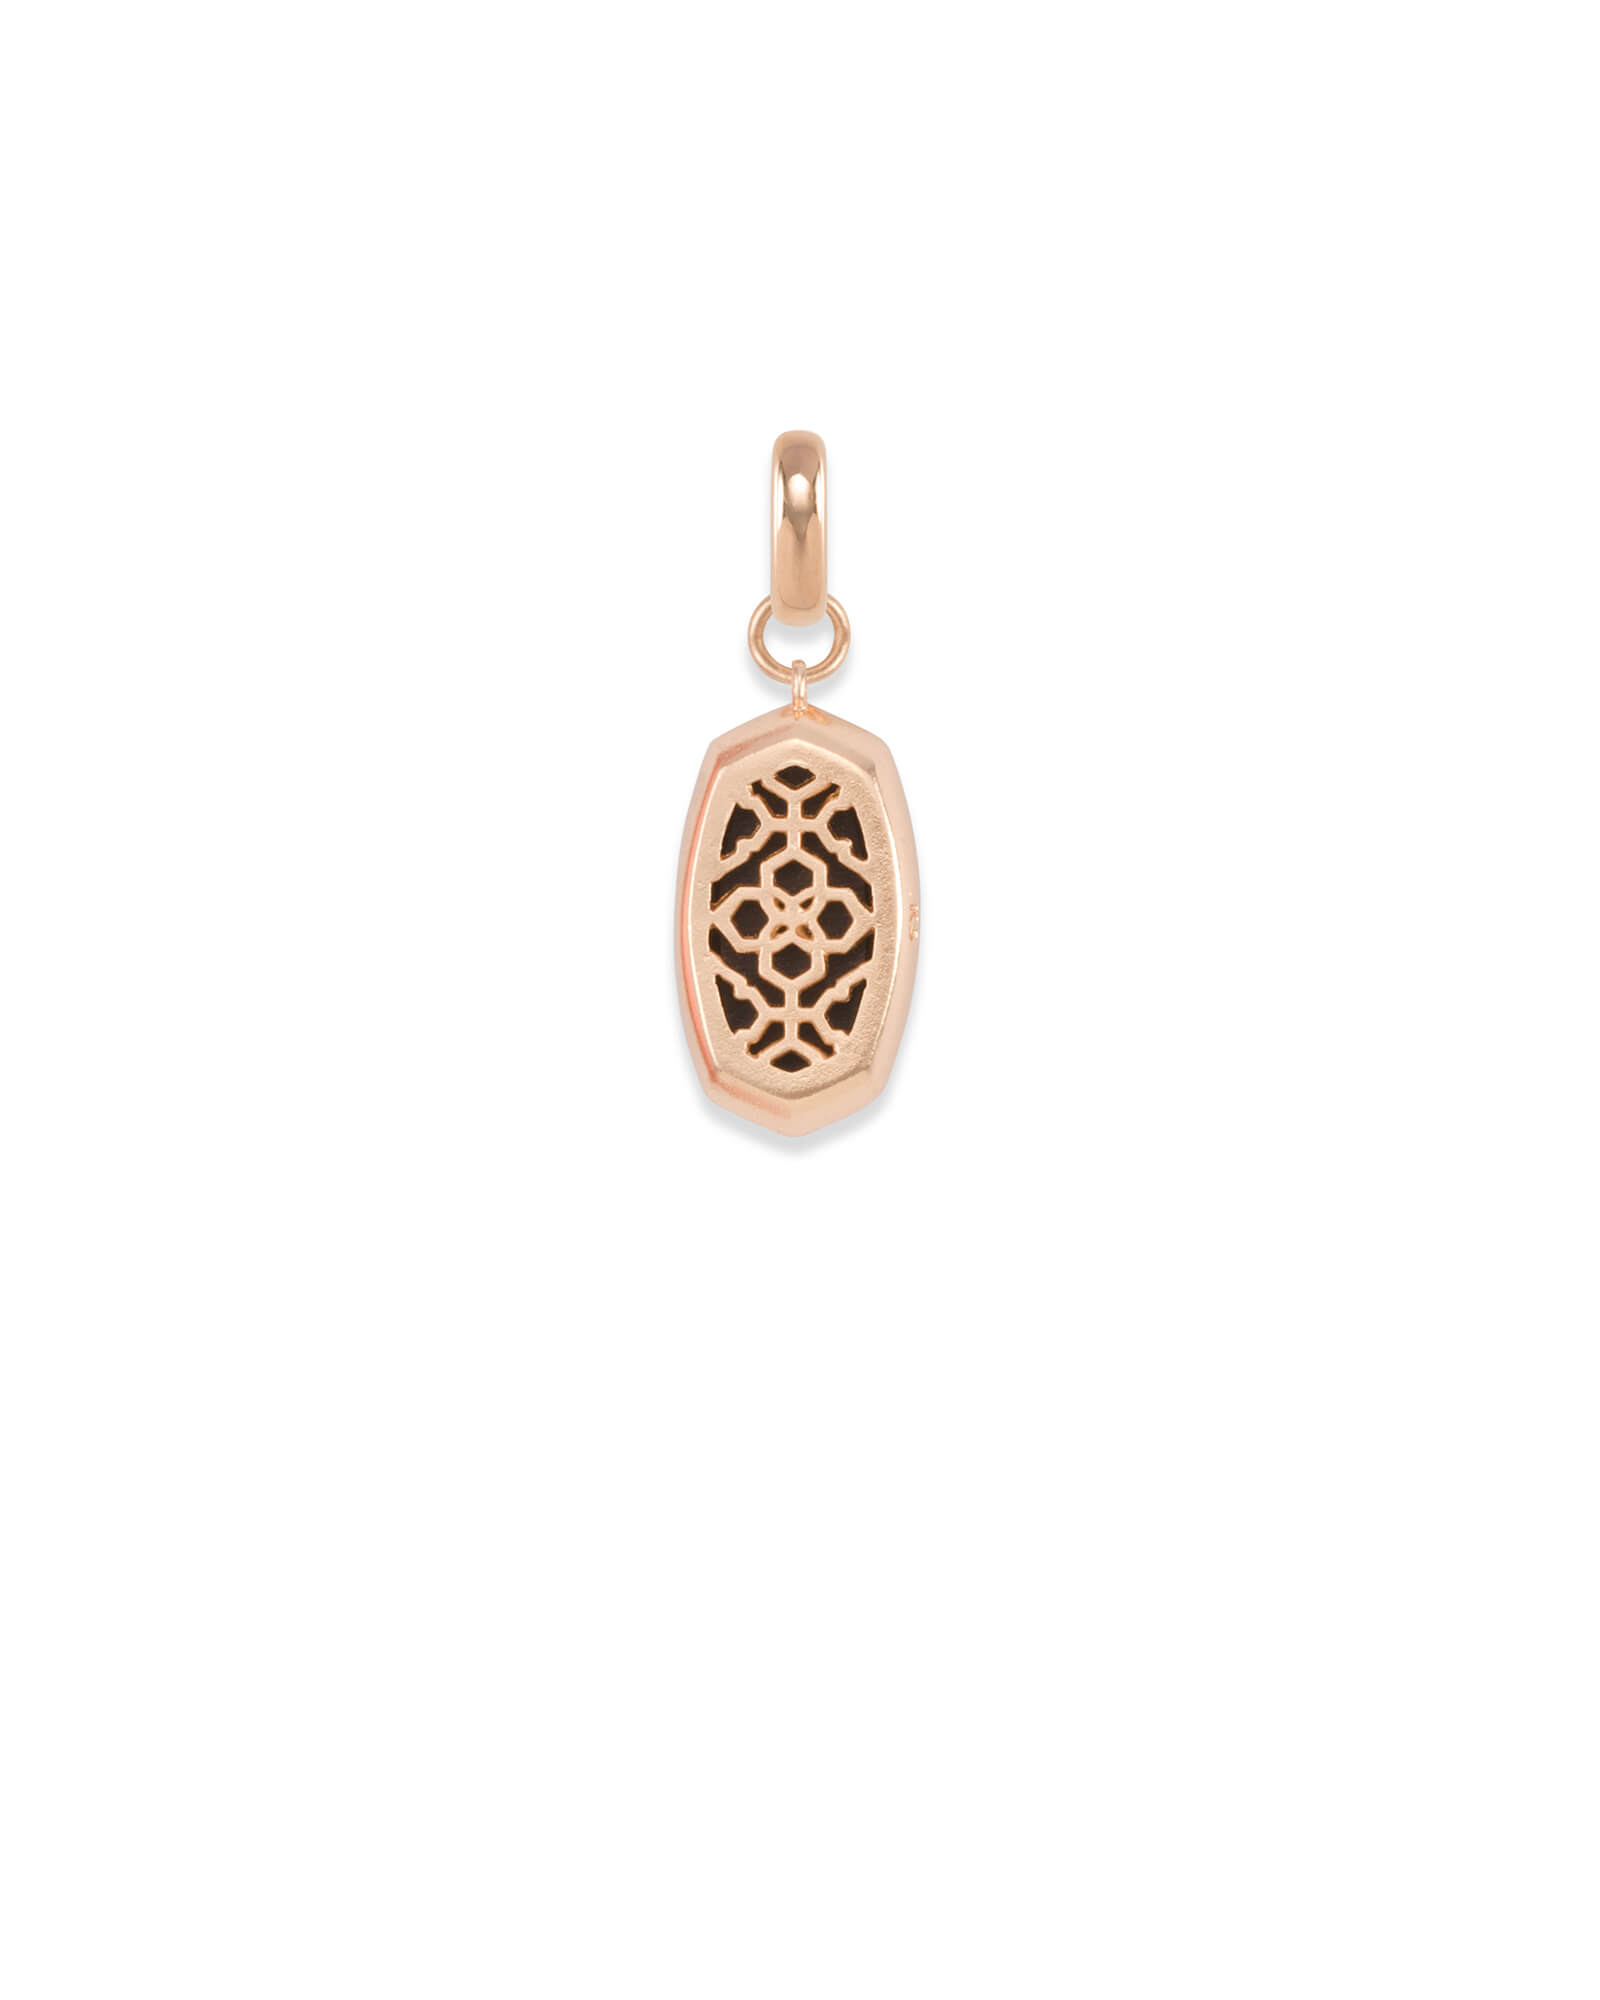 Mood Stone Charm in Rose Gold